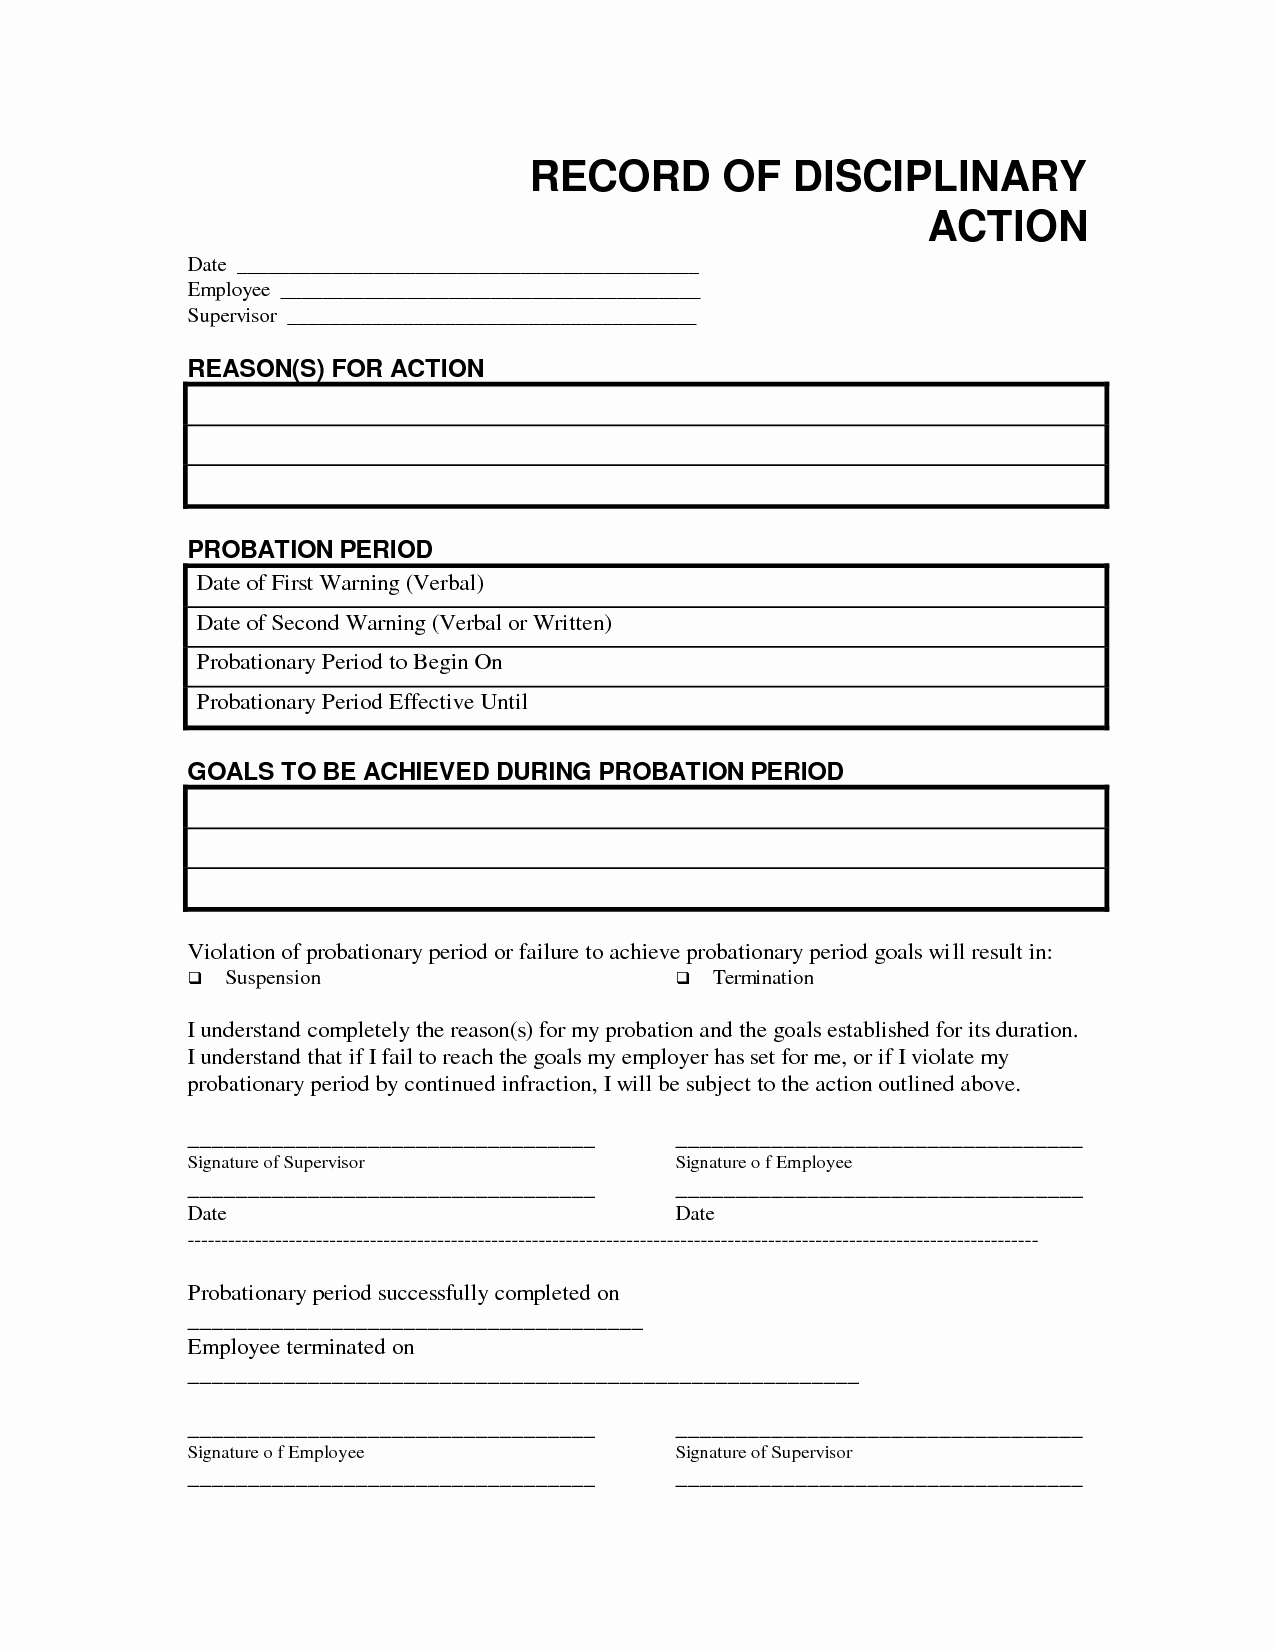 Employment Write Up Template Inspirational Record Disciplinary Action Free Office form Template by